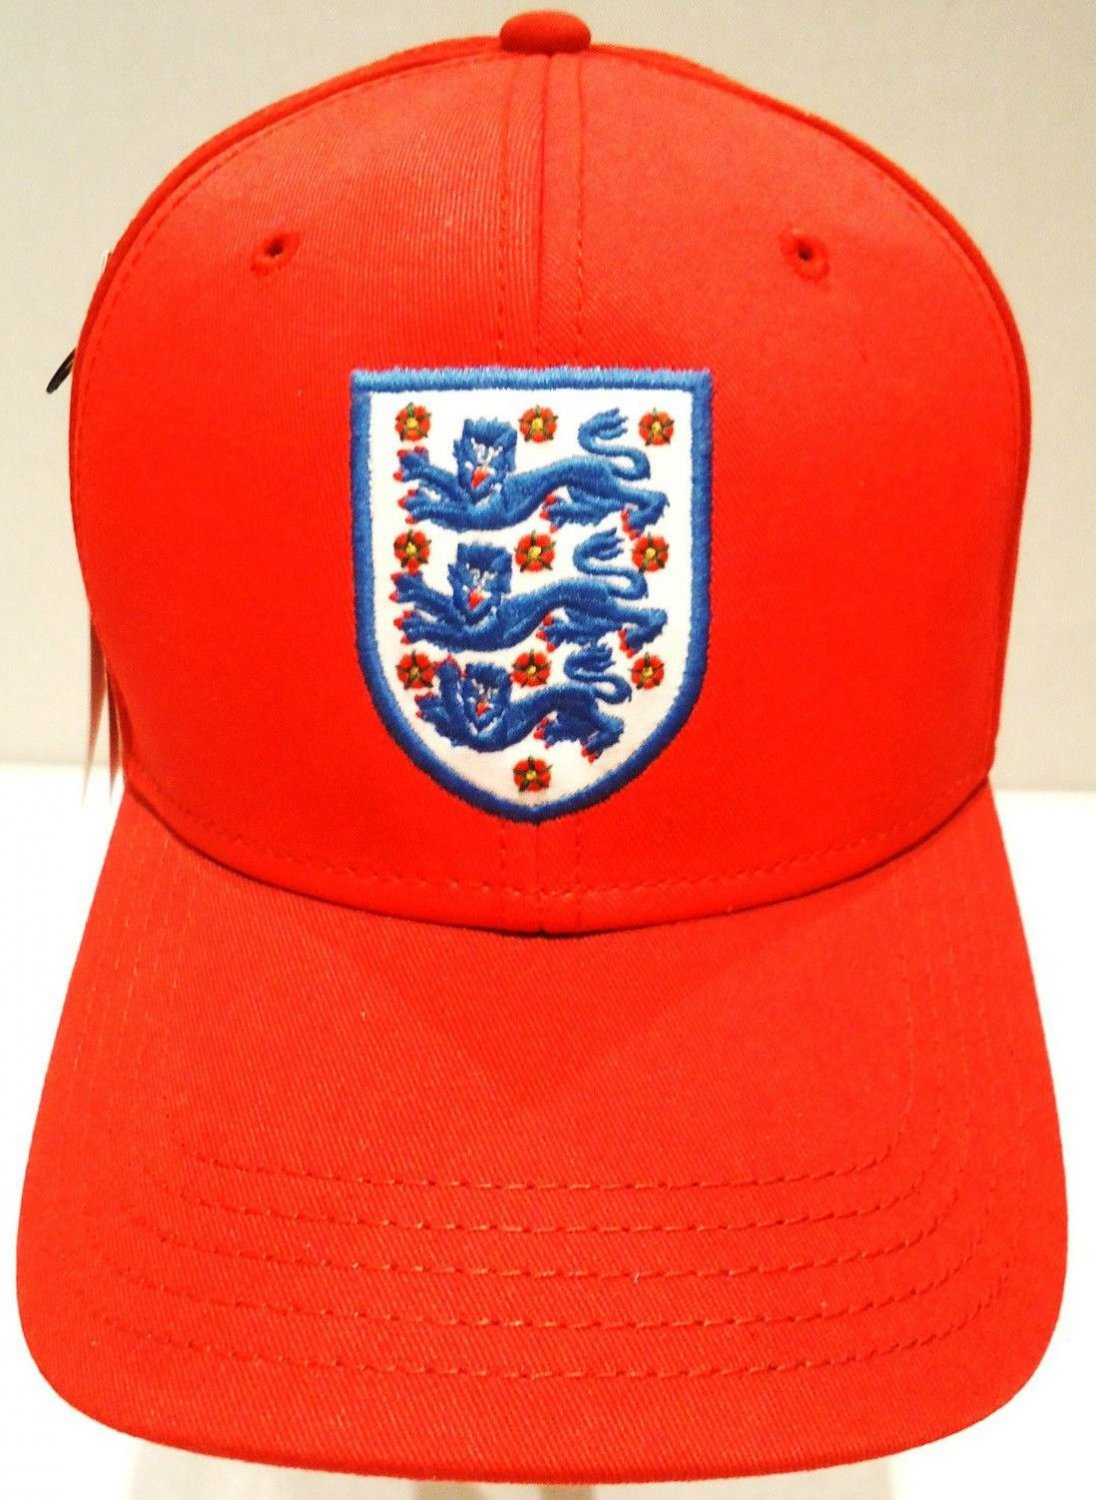 UMBRO - ENGLAND - RED - OFFICIAL - SOCCER - TEAM - CAP - NEW - ROONEY - HAT